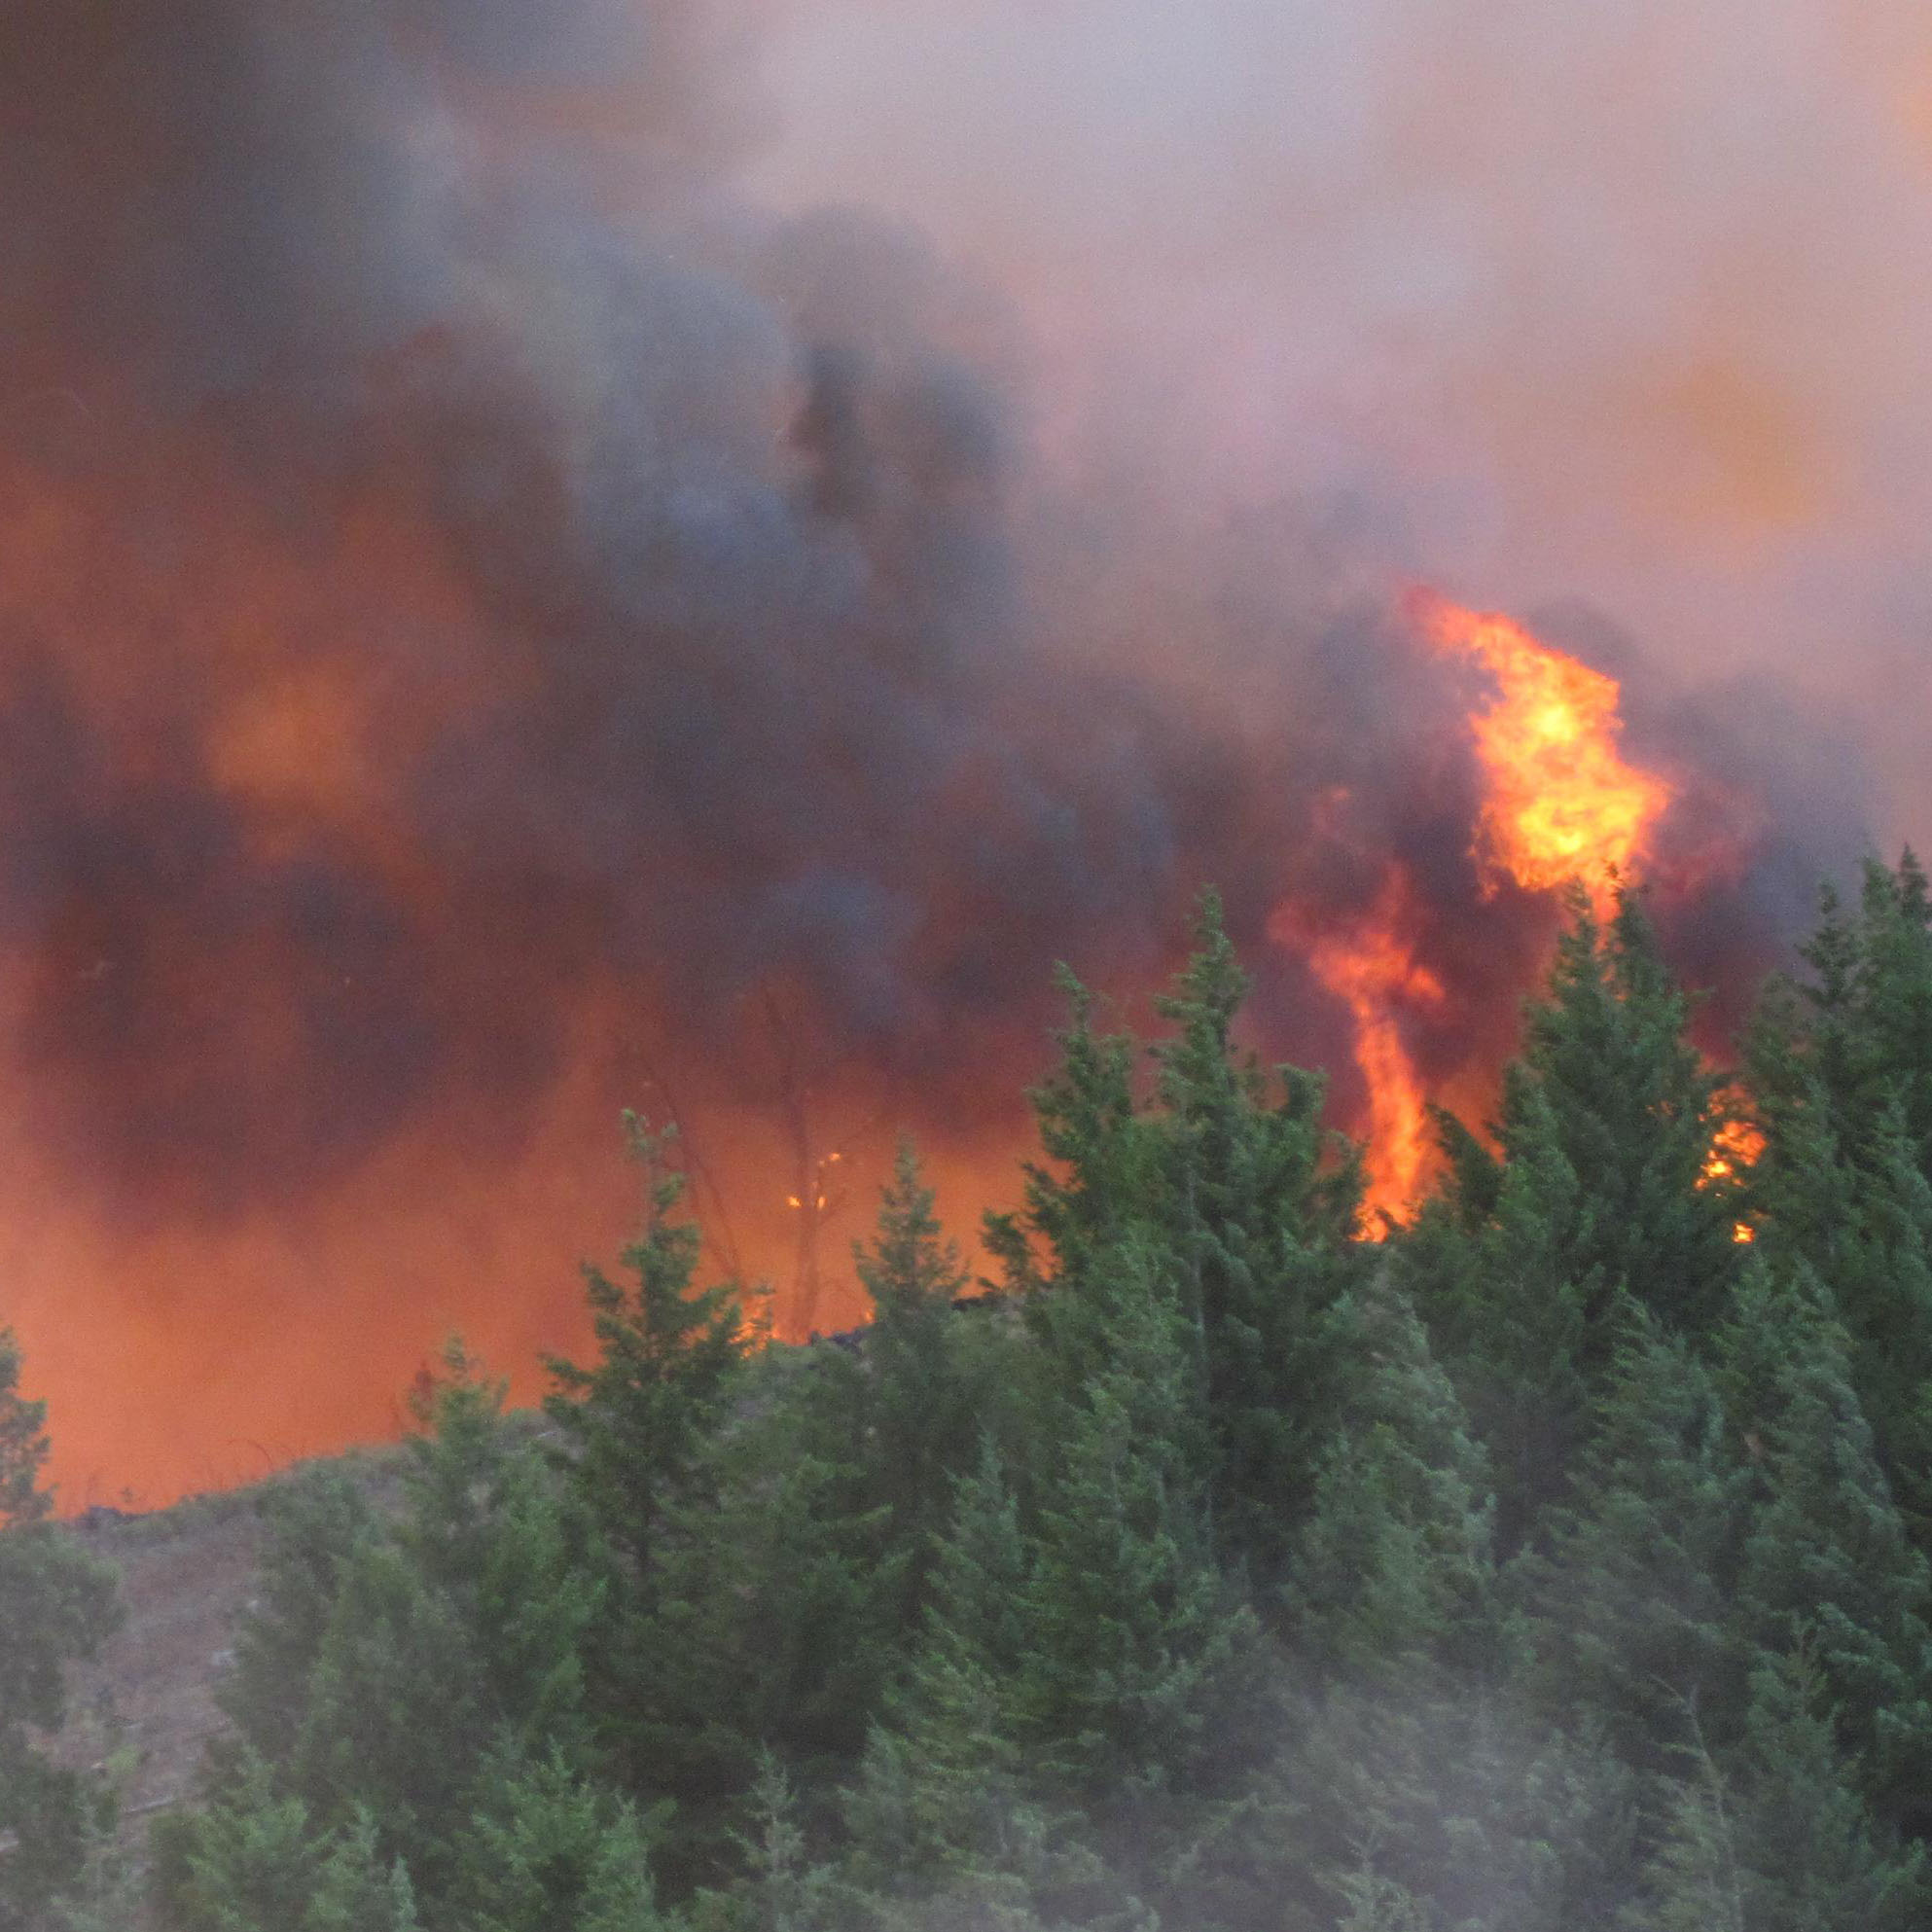 High Wildfire Severity Risk Seen In Young Plantation